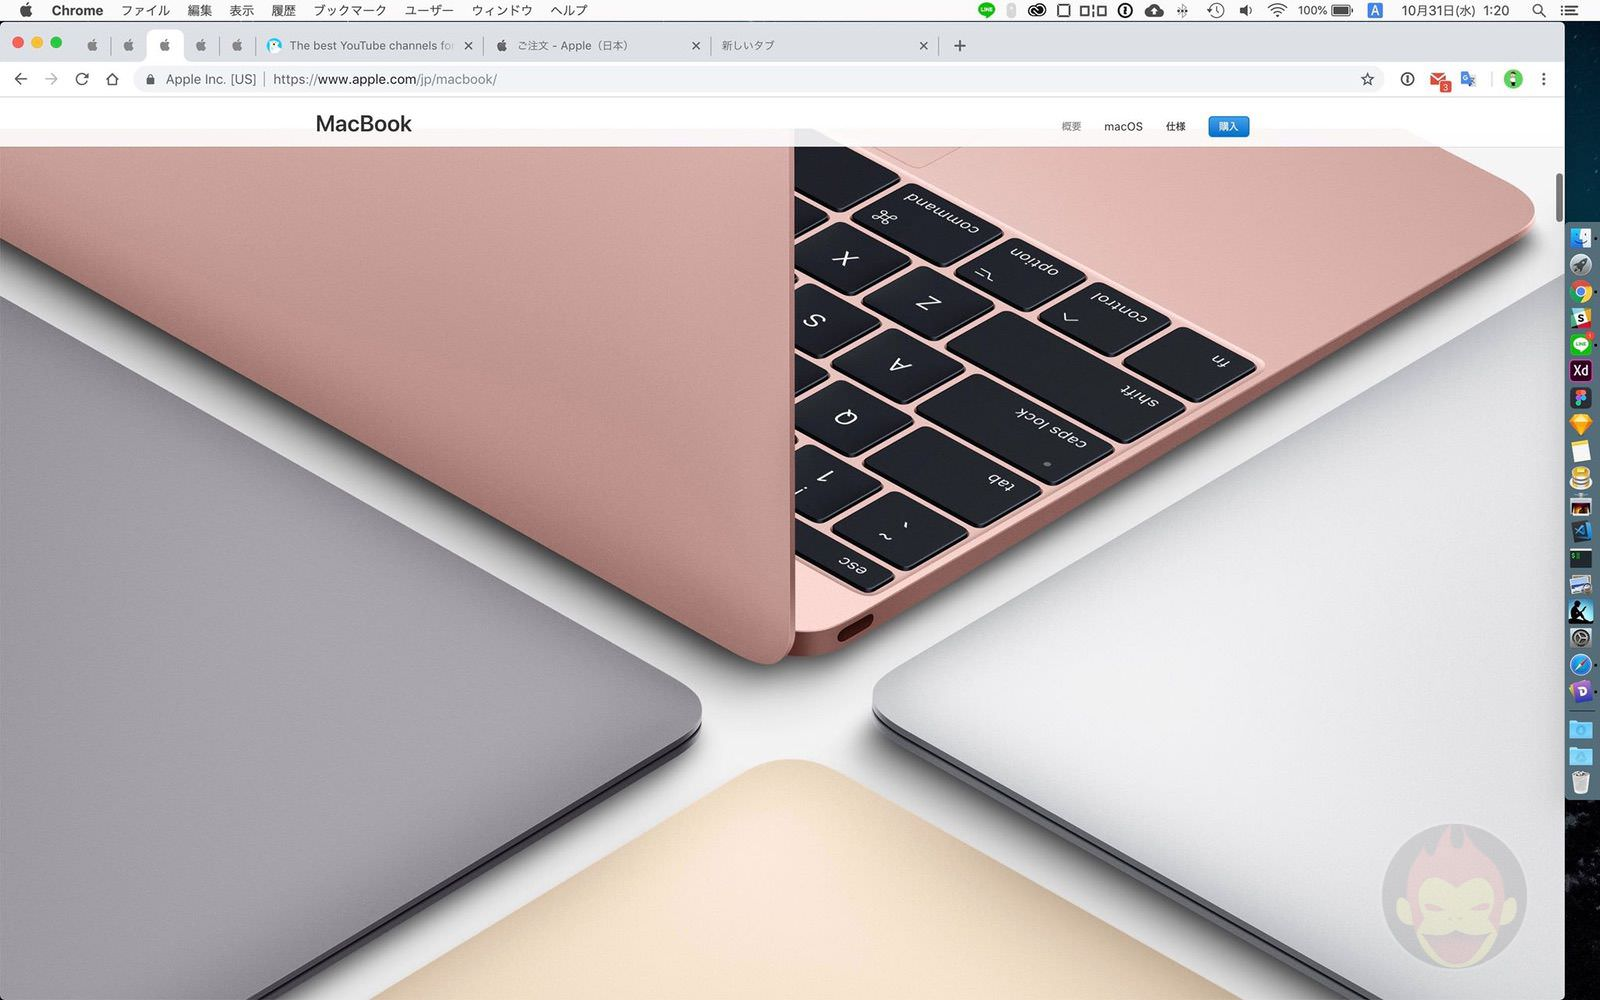 MacBook 12inch model loses rose gold 01